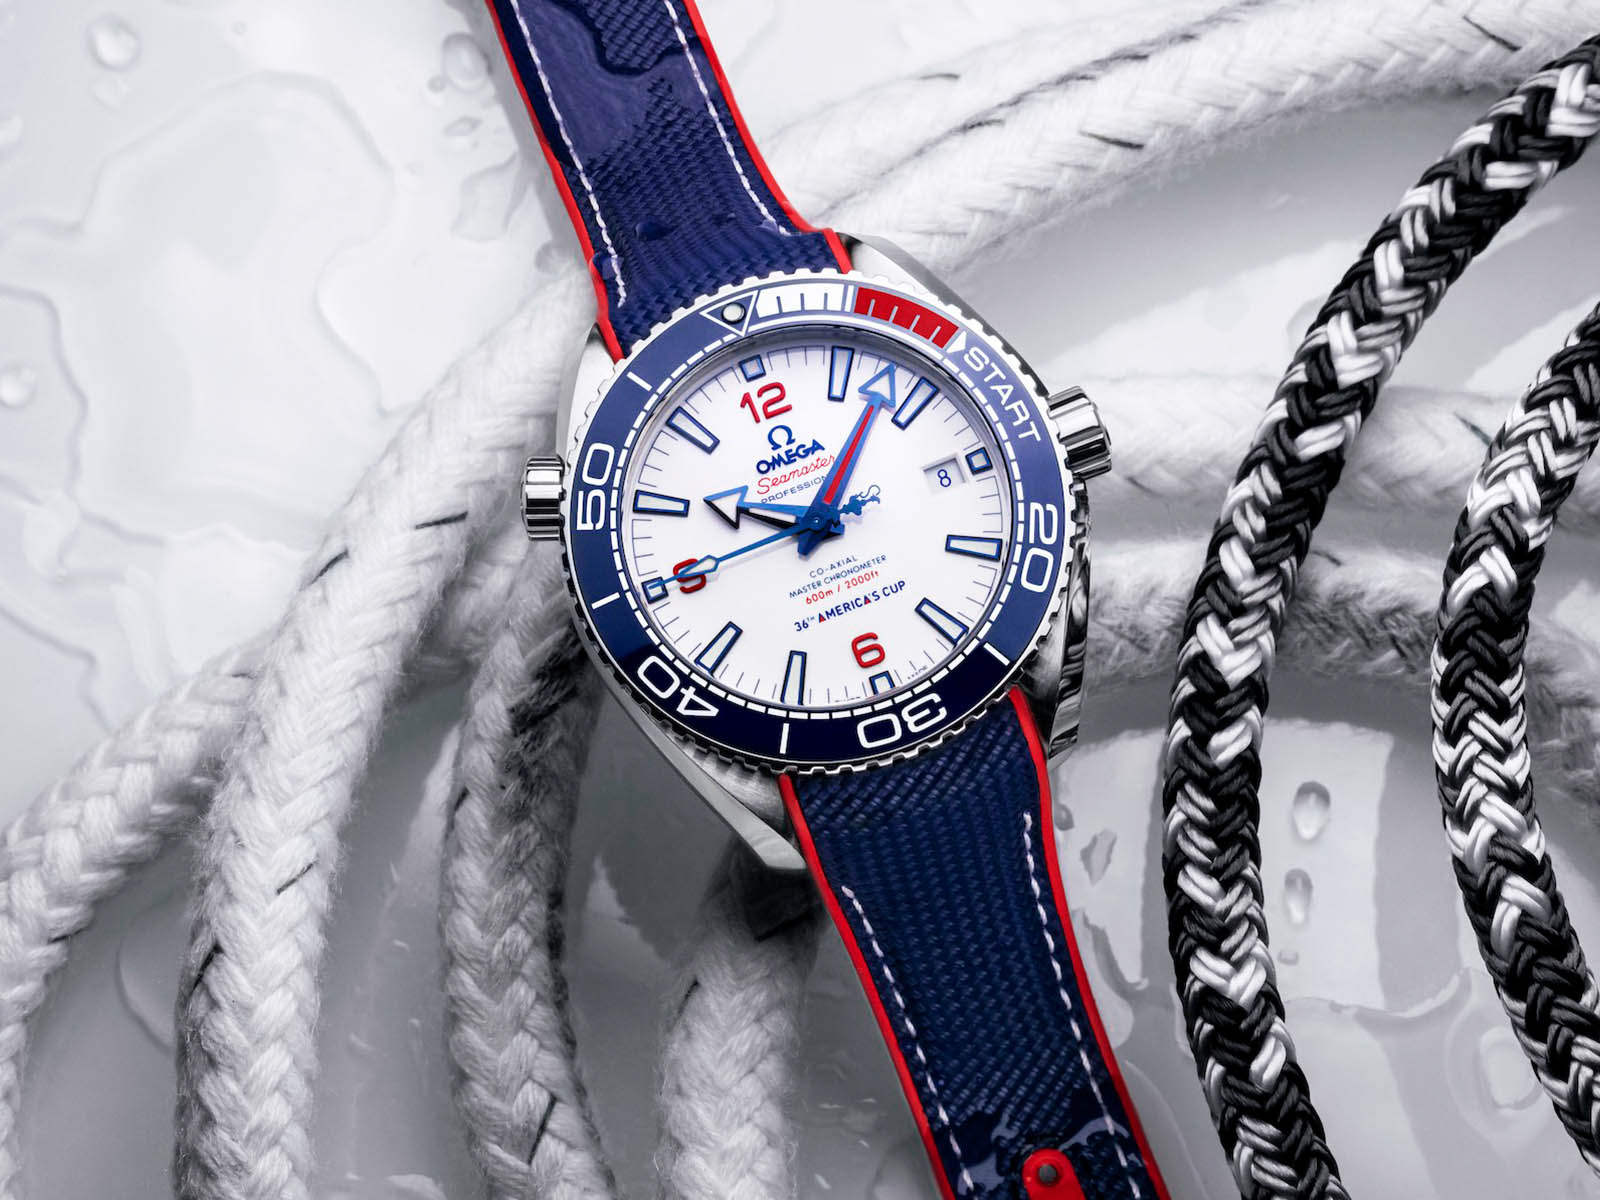 215-32-43-21-04-001-omega-seamaster-planet-ocean-36th-america-s-cup-2.jpg